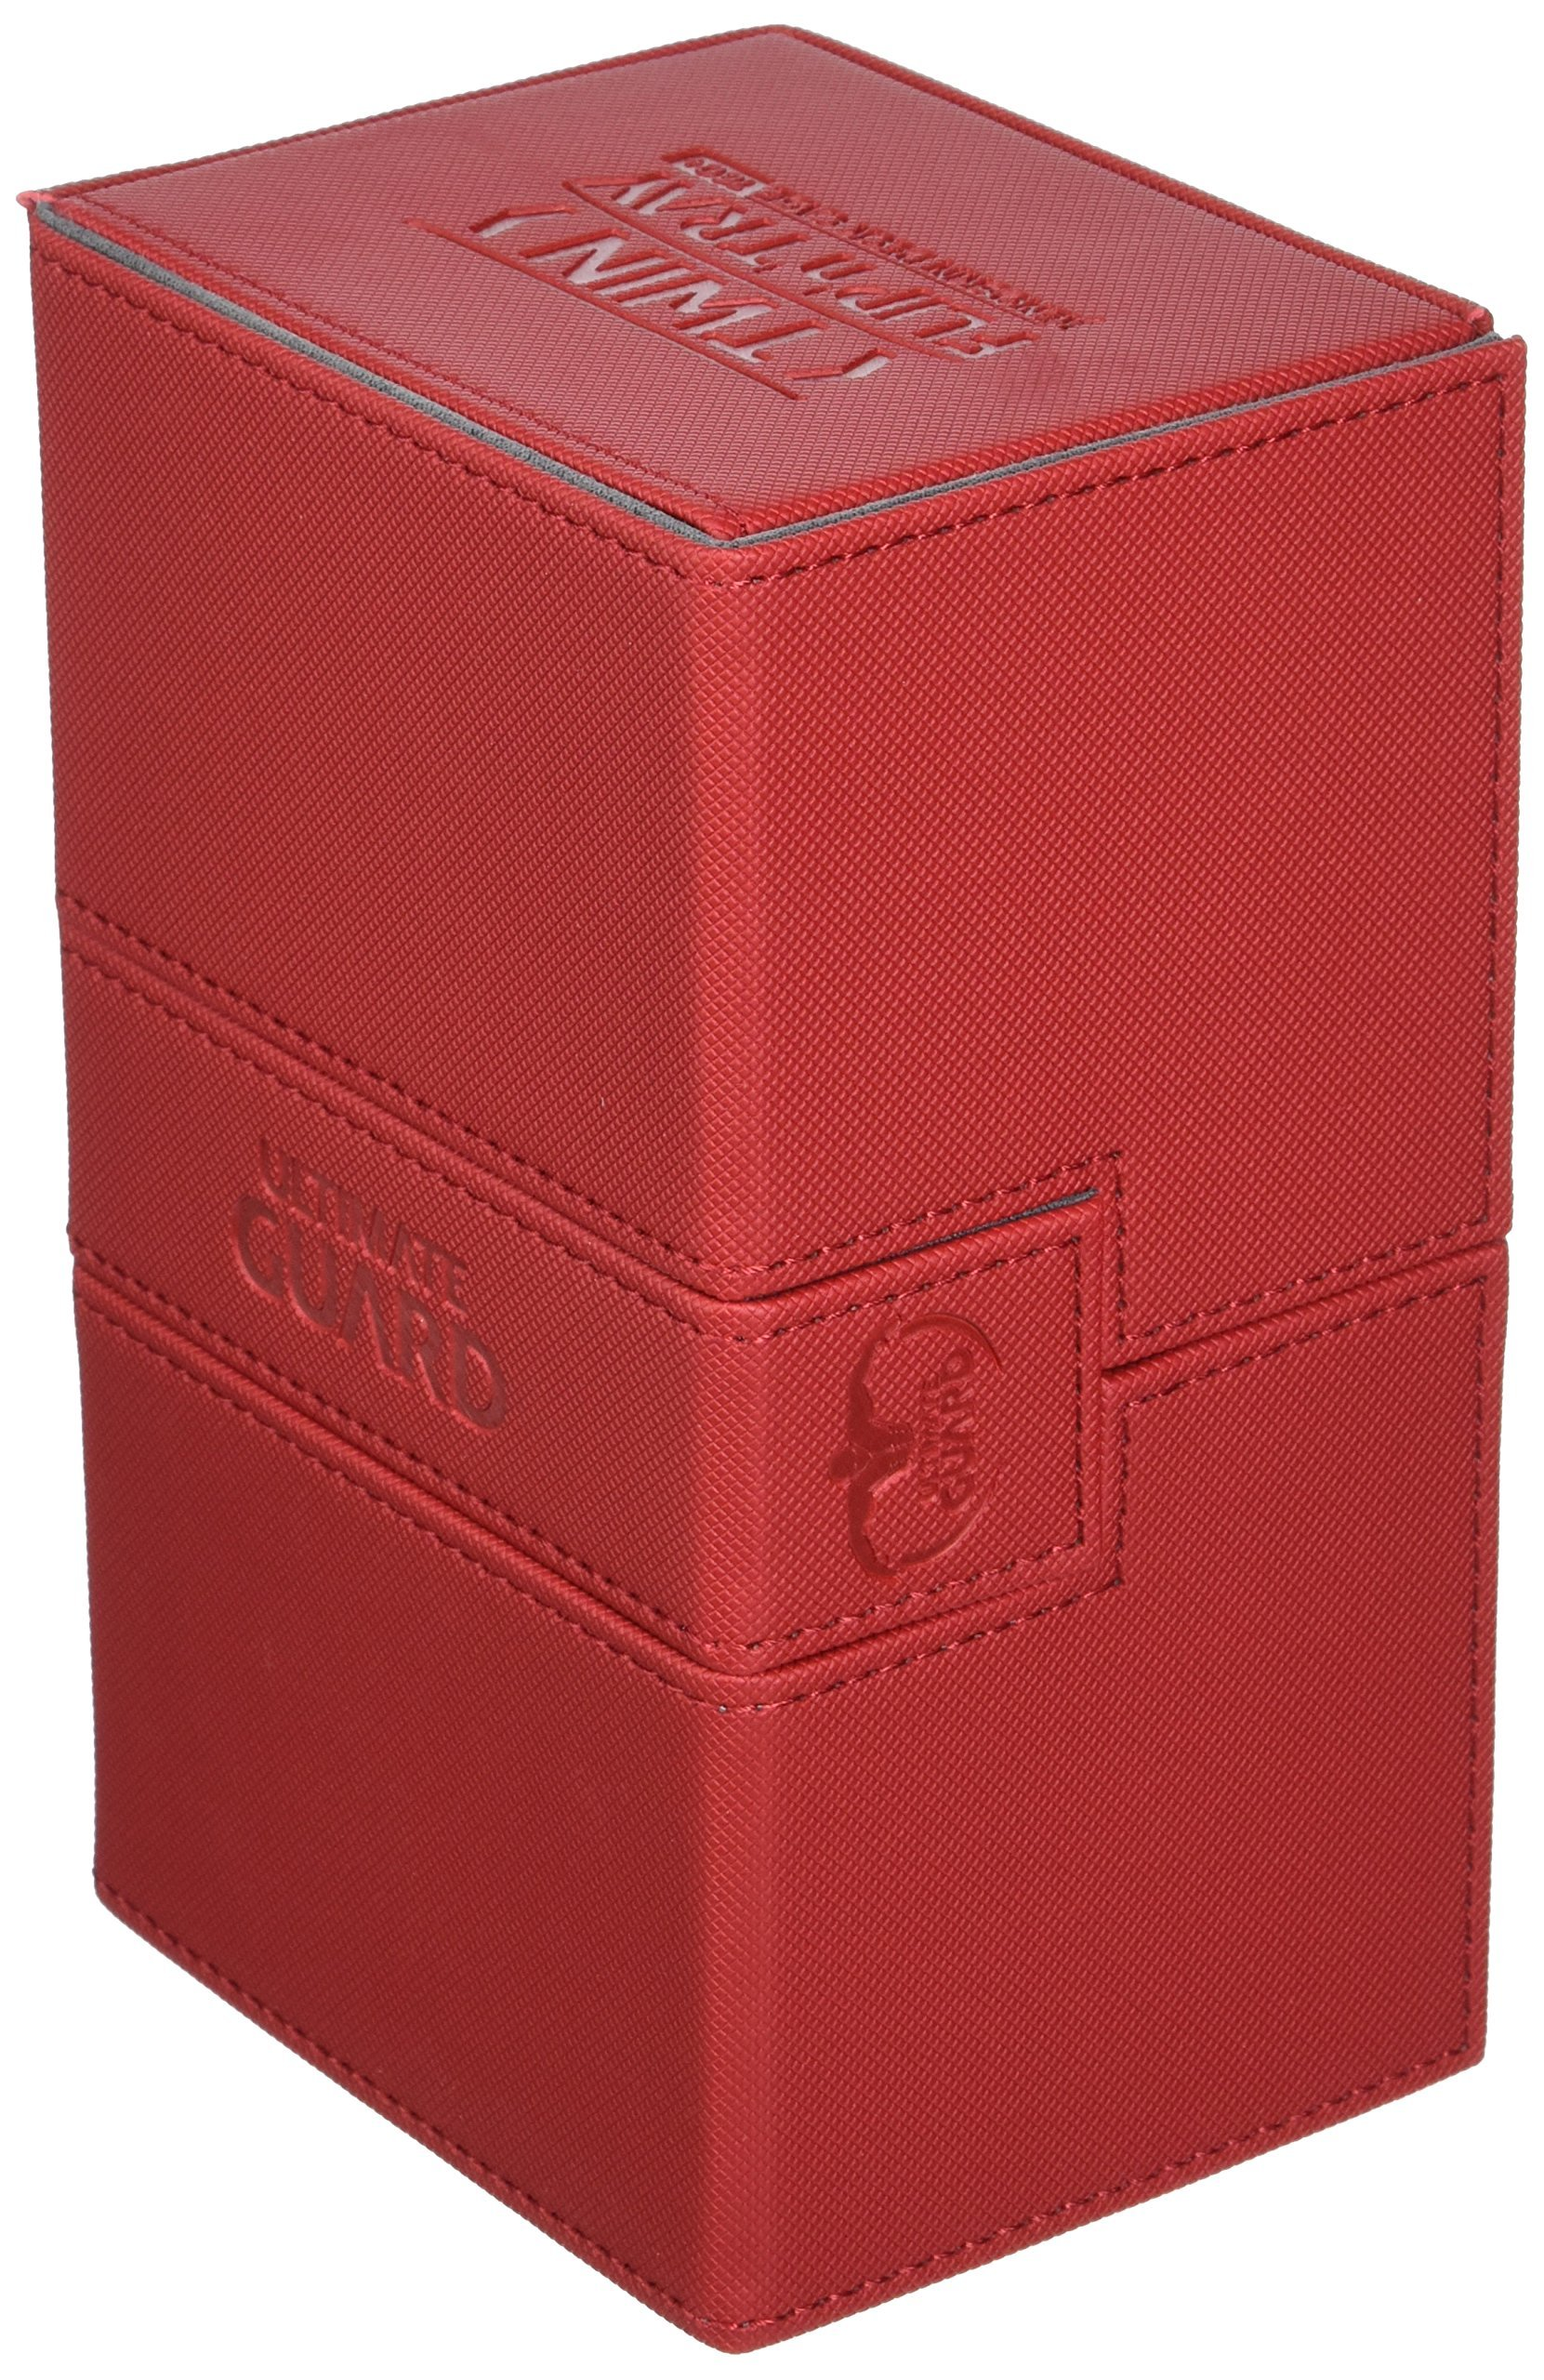 Deck Box: Twin Flip N Tray Xeno 160+ Card Game, Red by Ultimate Guard